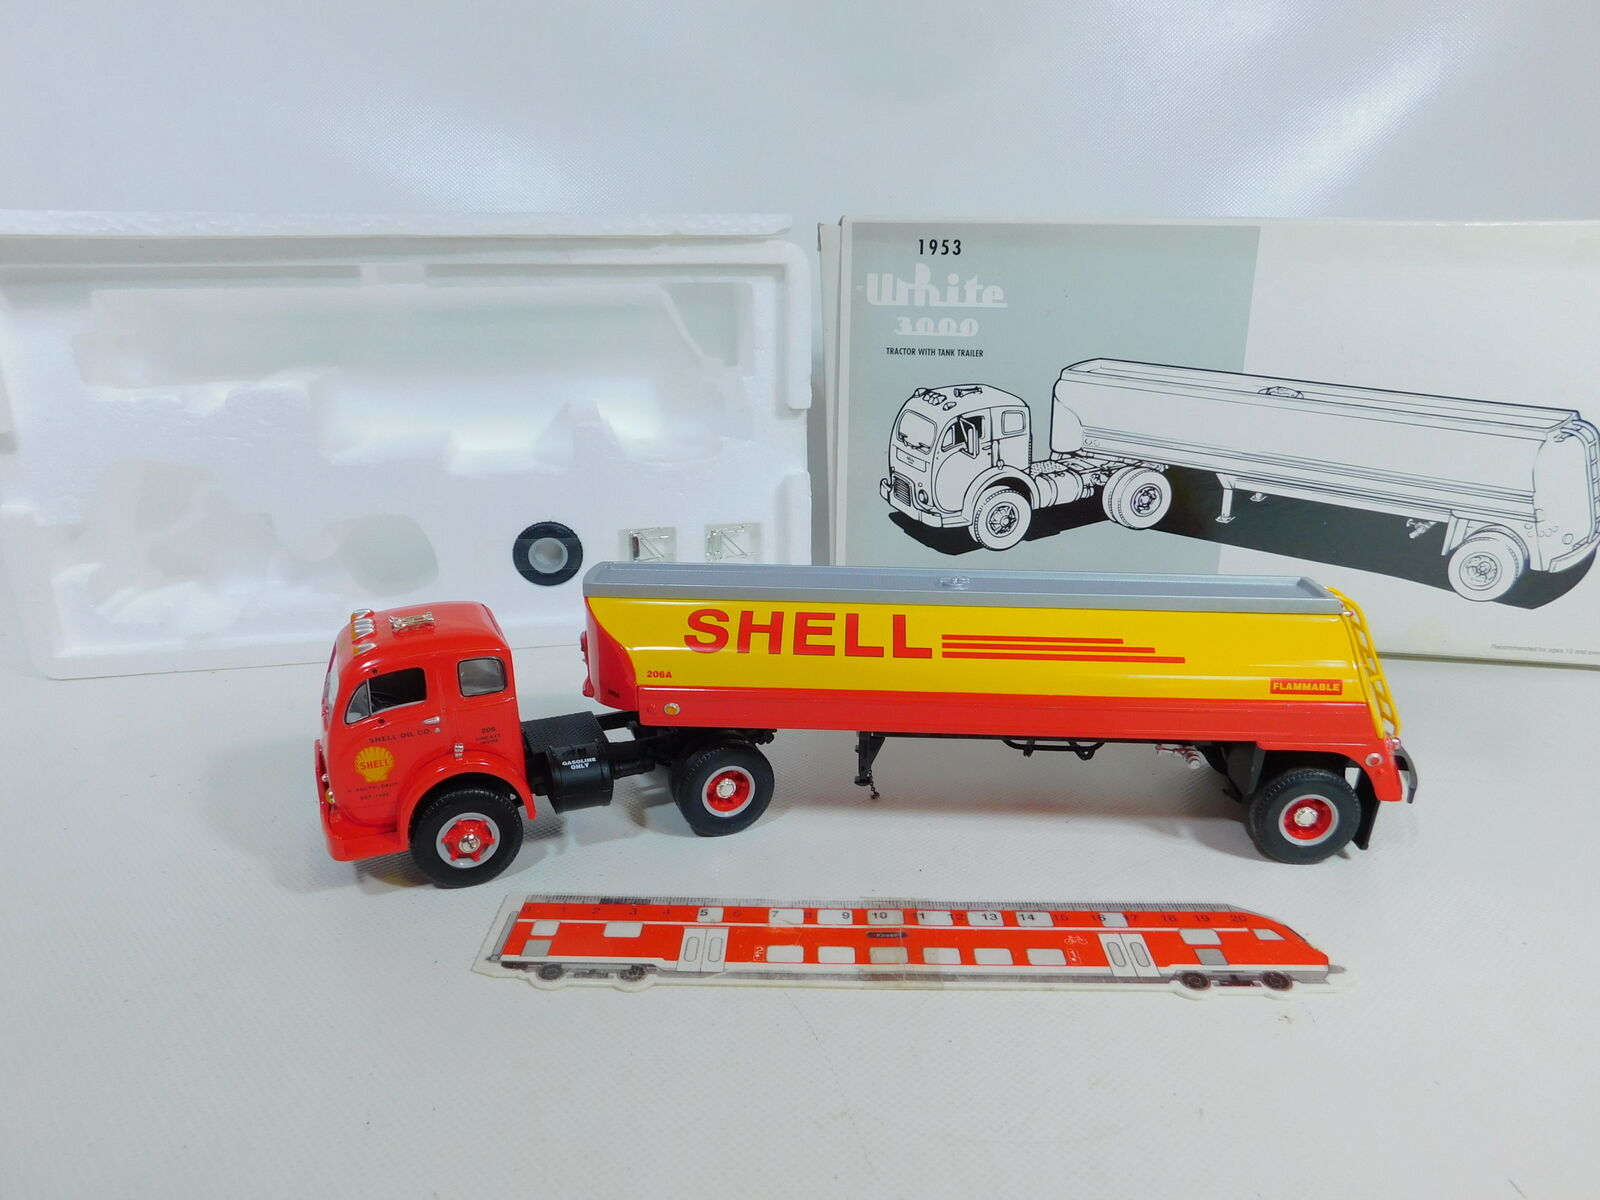 CA121-2  First Gear 1 34 19-1953 Tank Truck White 3000 1953 Shell, Very Good + OVP